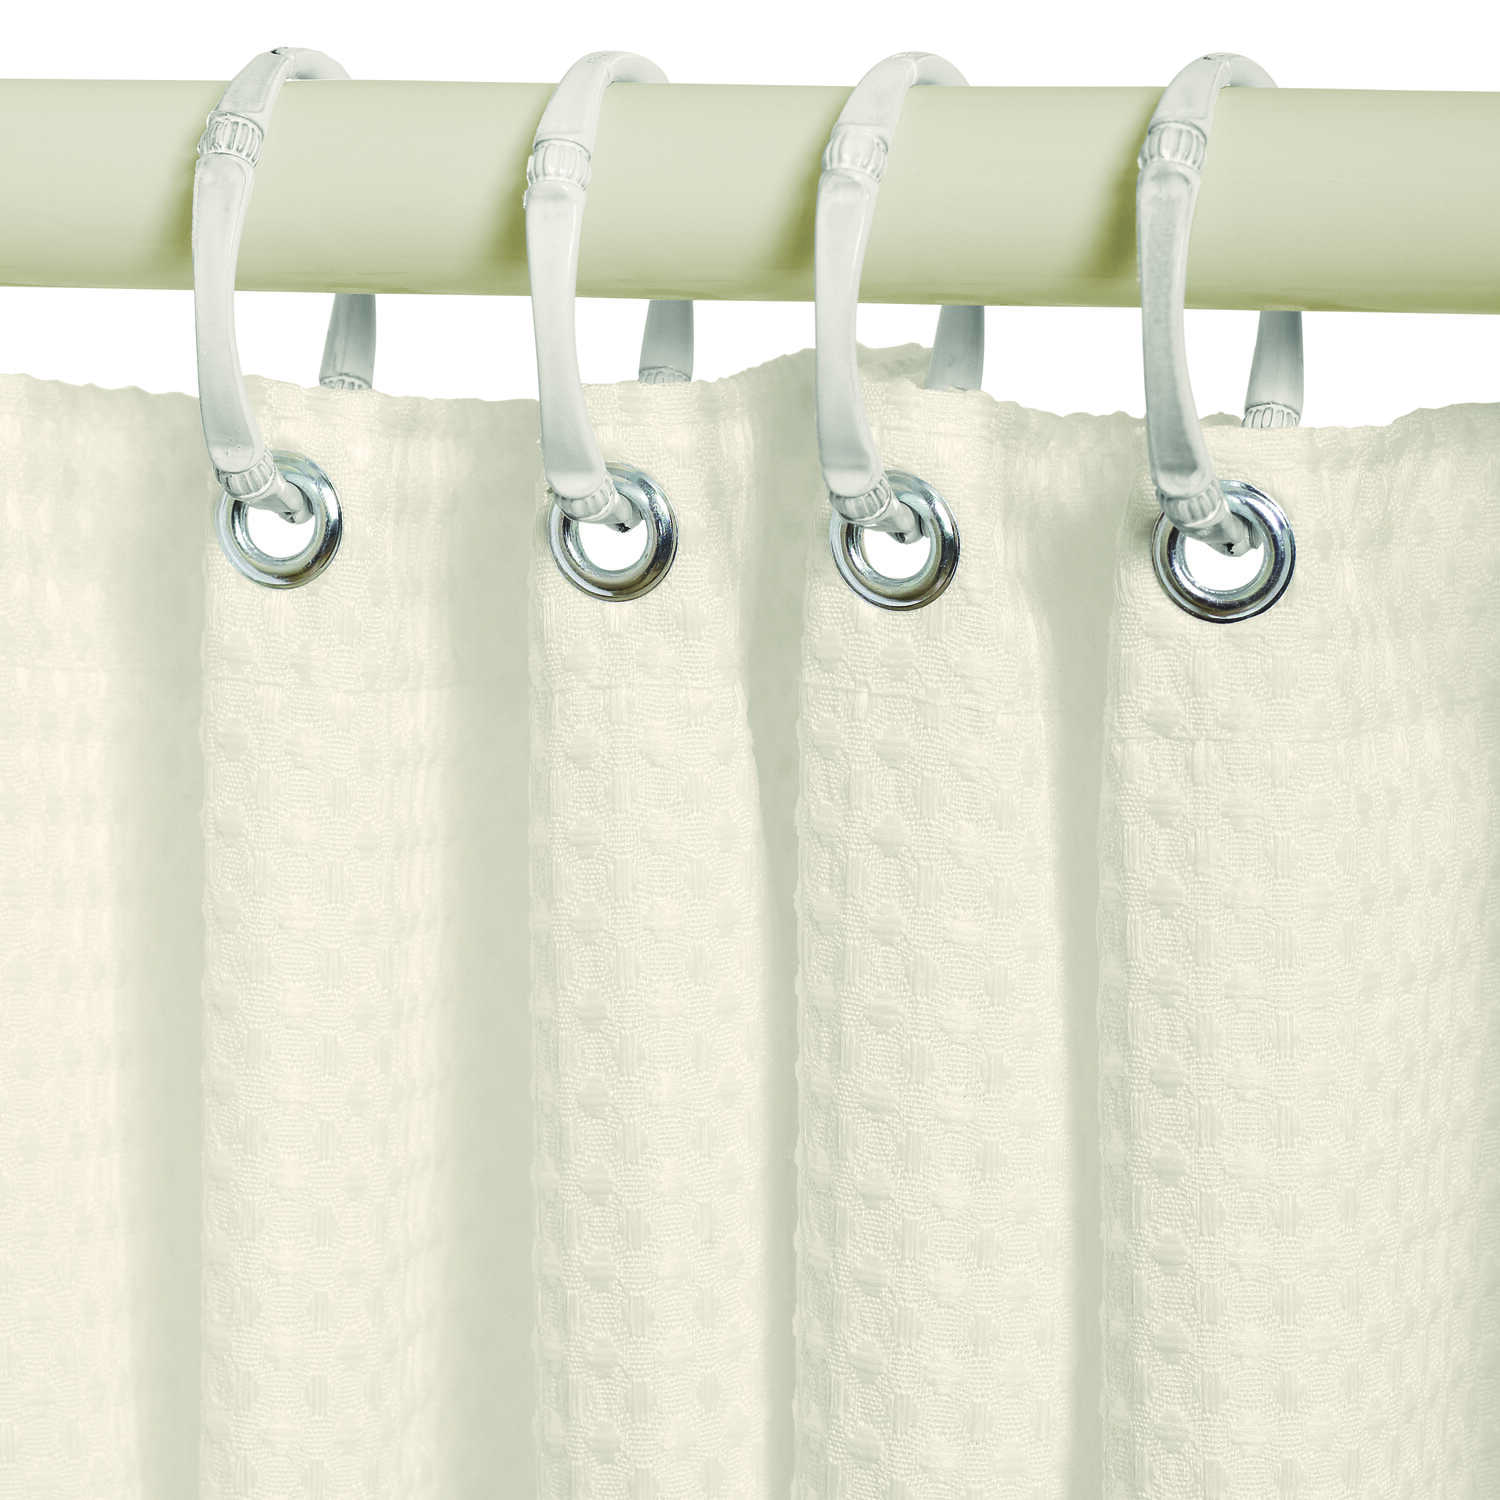 Zenna Home  72 in. H x 70 in. W Taupe  Waffle  Shower Curtain Liner  Fabric